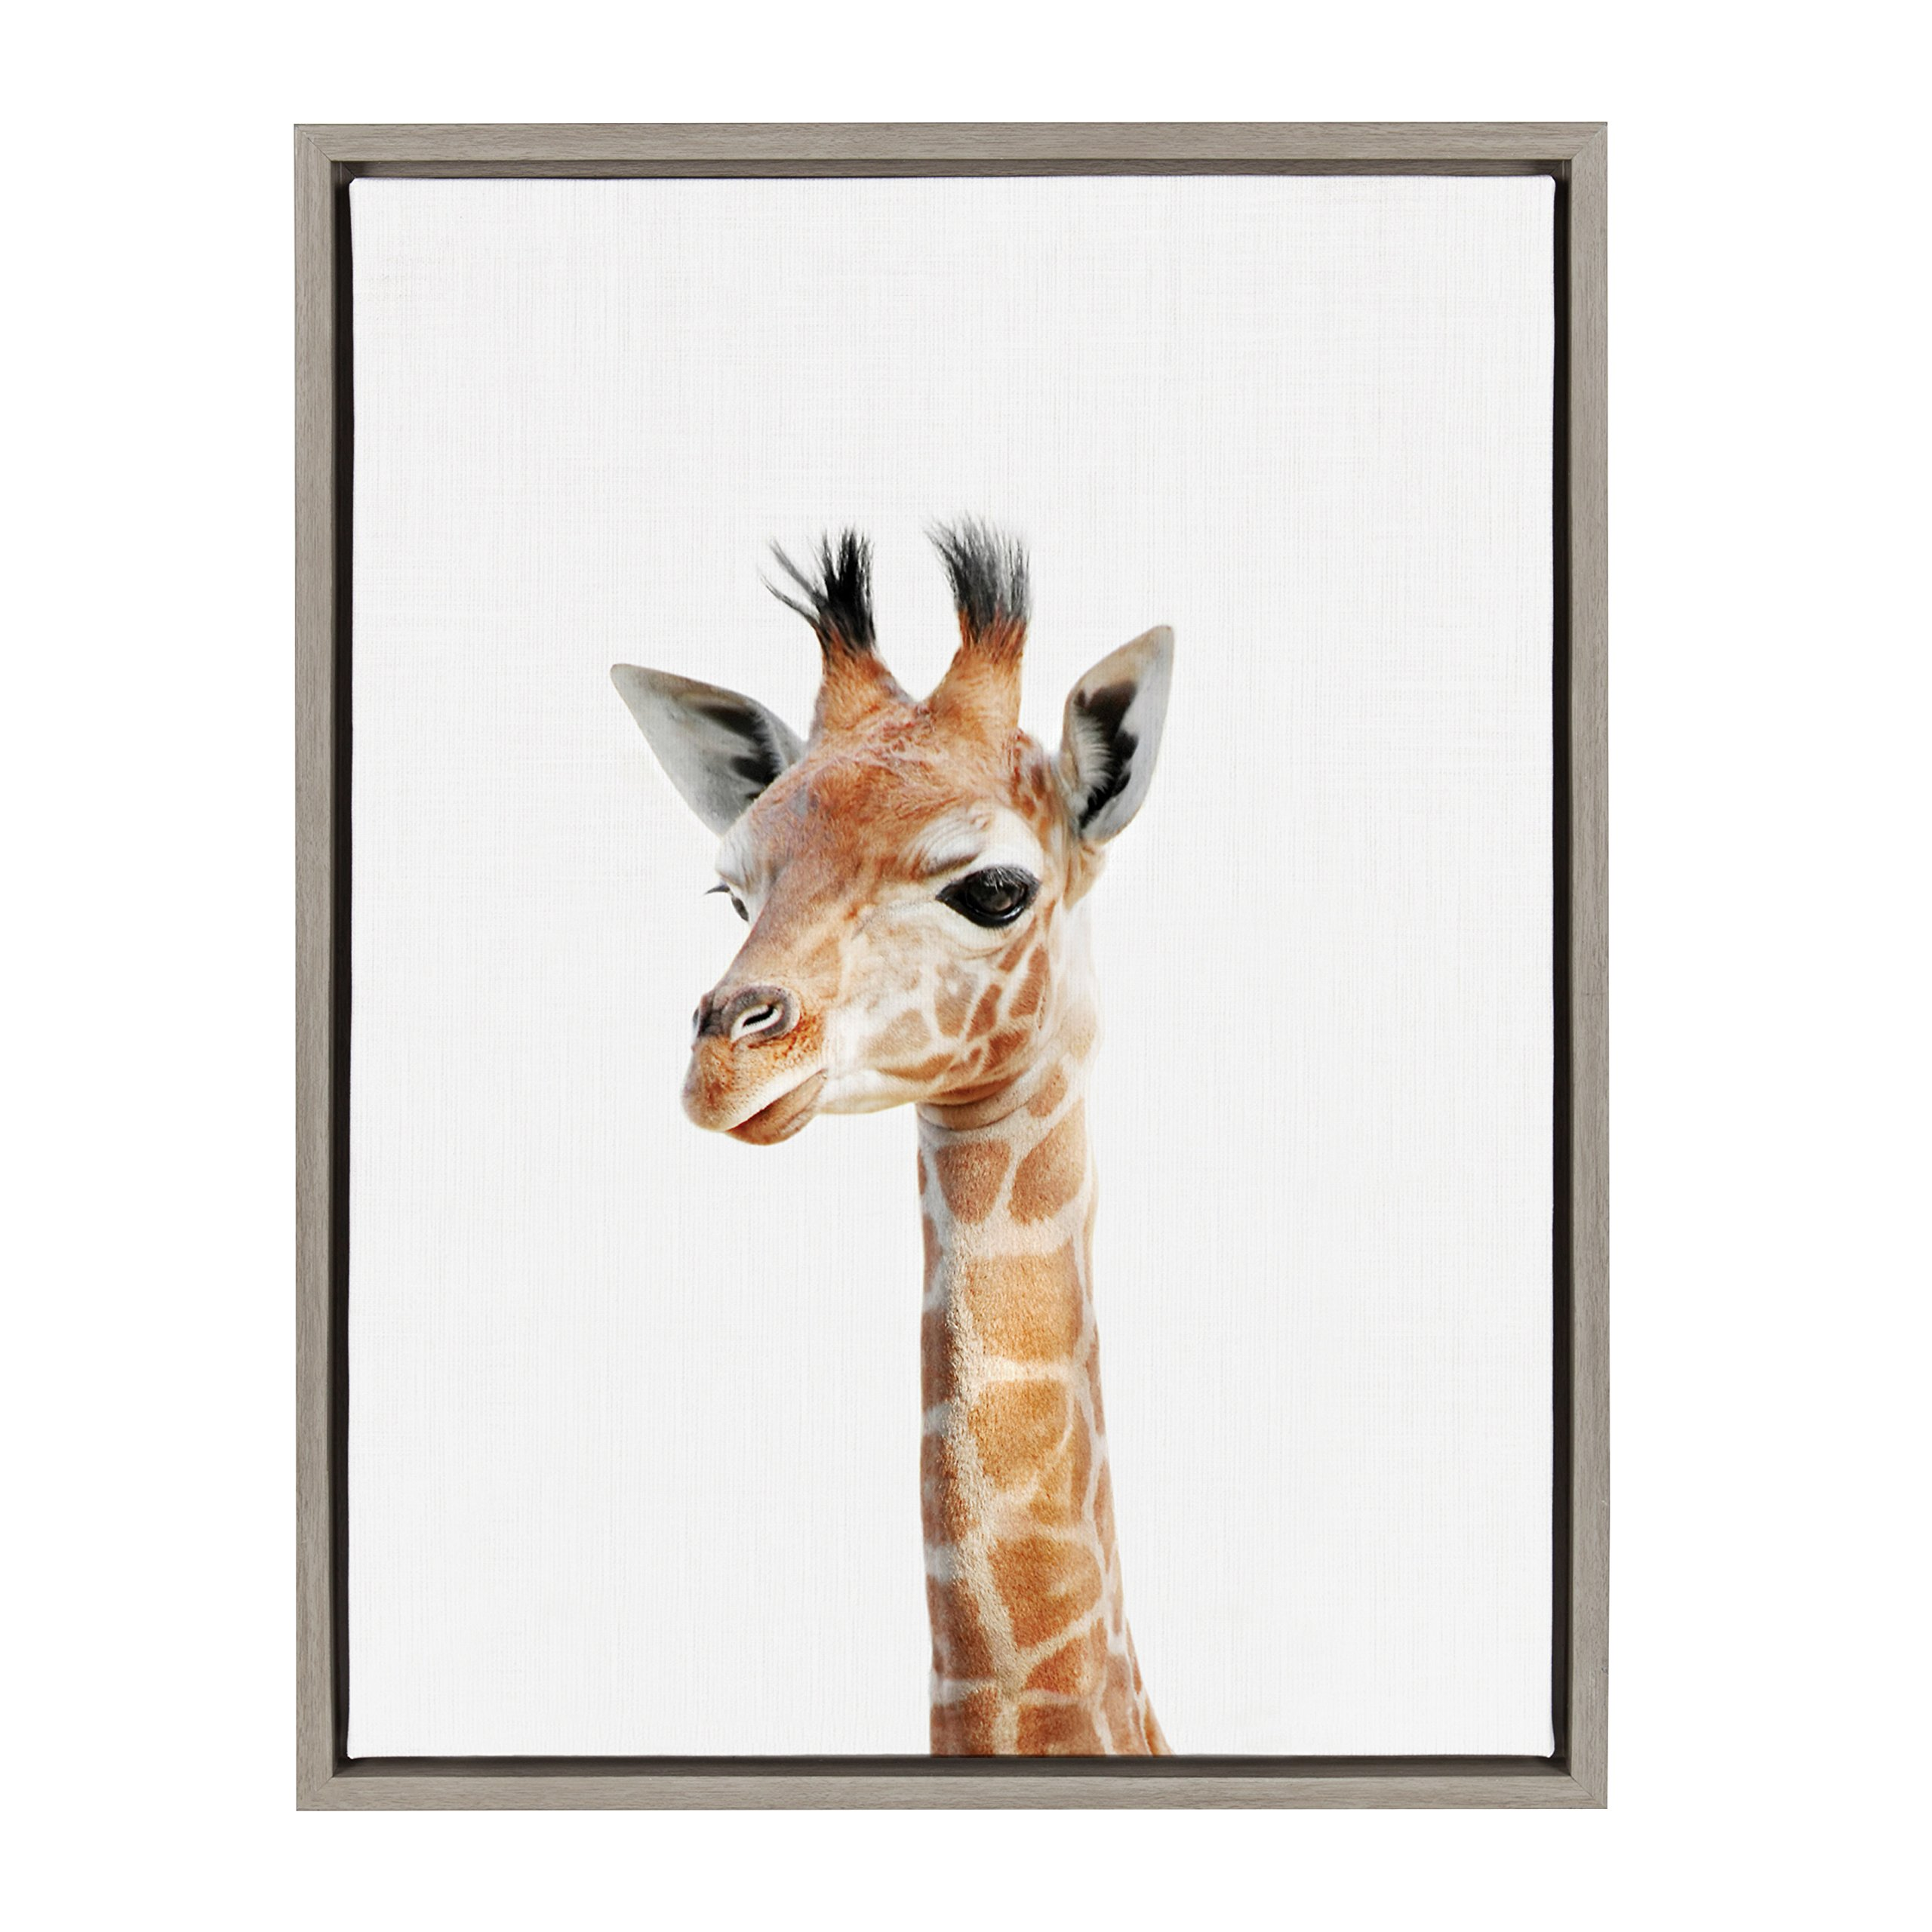 Kate and Laurel - Sylvie Baby Giraffe Animal Print Portrait Framed Canvas Wall Art by Amy Peterson, Gray 18 x 24